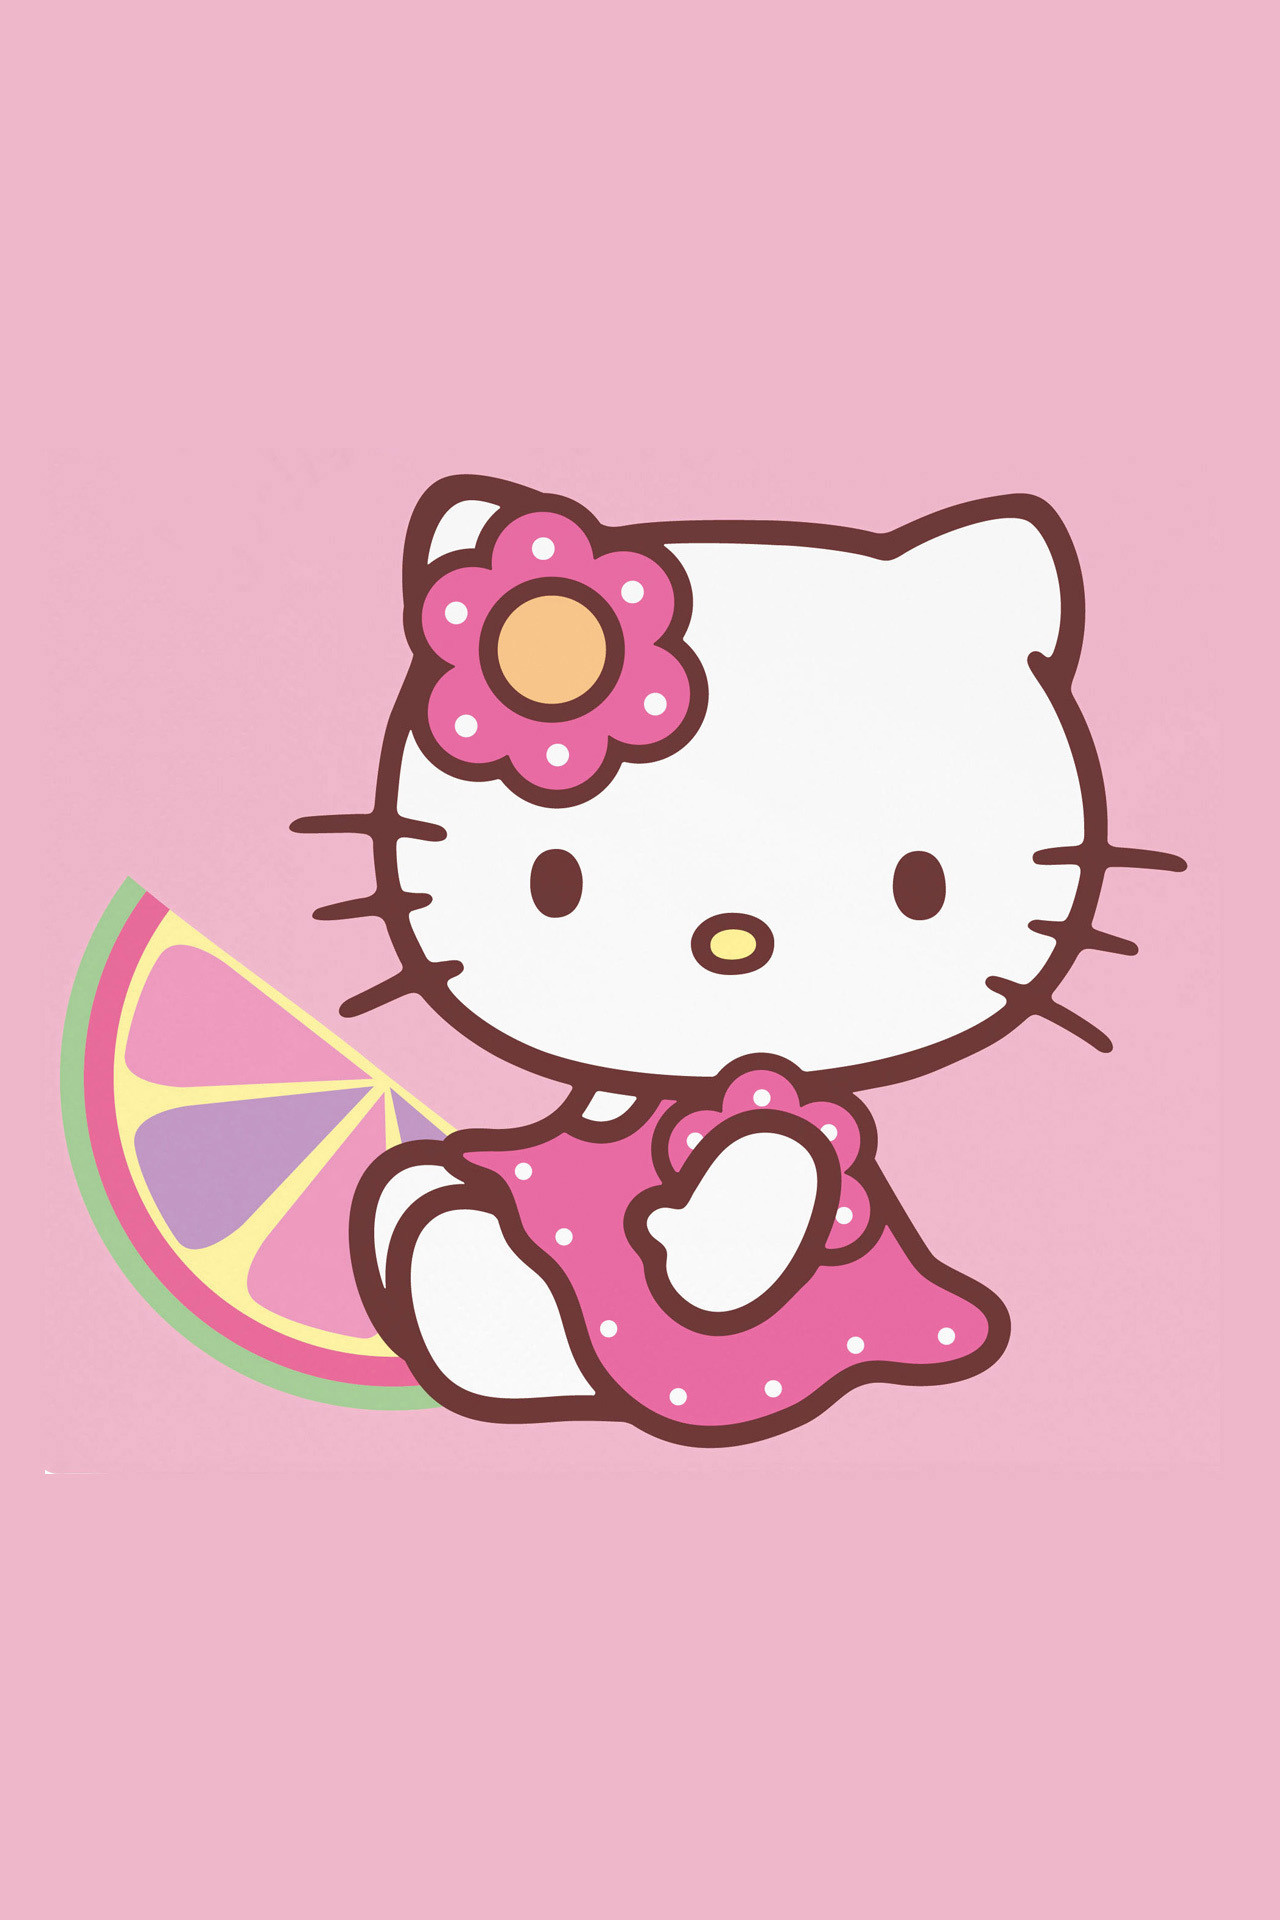 Cool and colorful Hello Kitty wallpapers to fit your iPhone iPhone iPhone  Galaxy and Galaxy Note